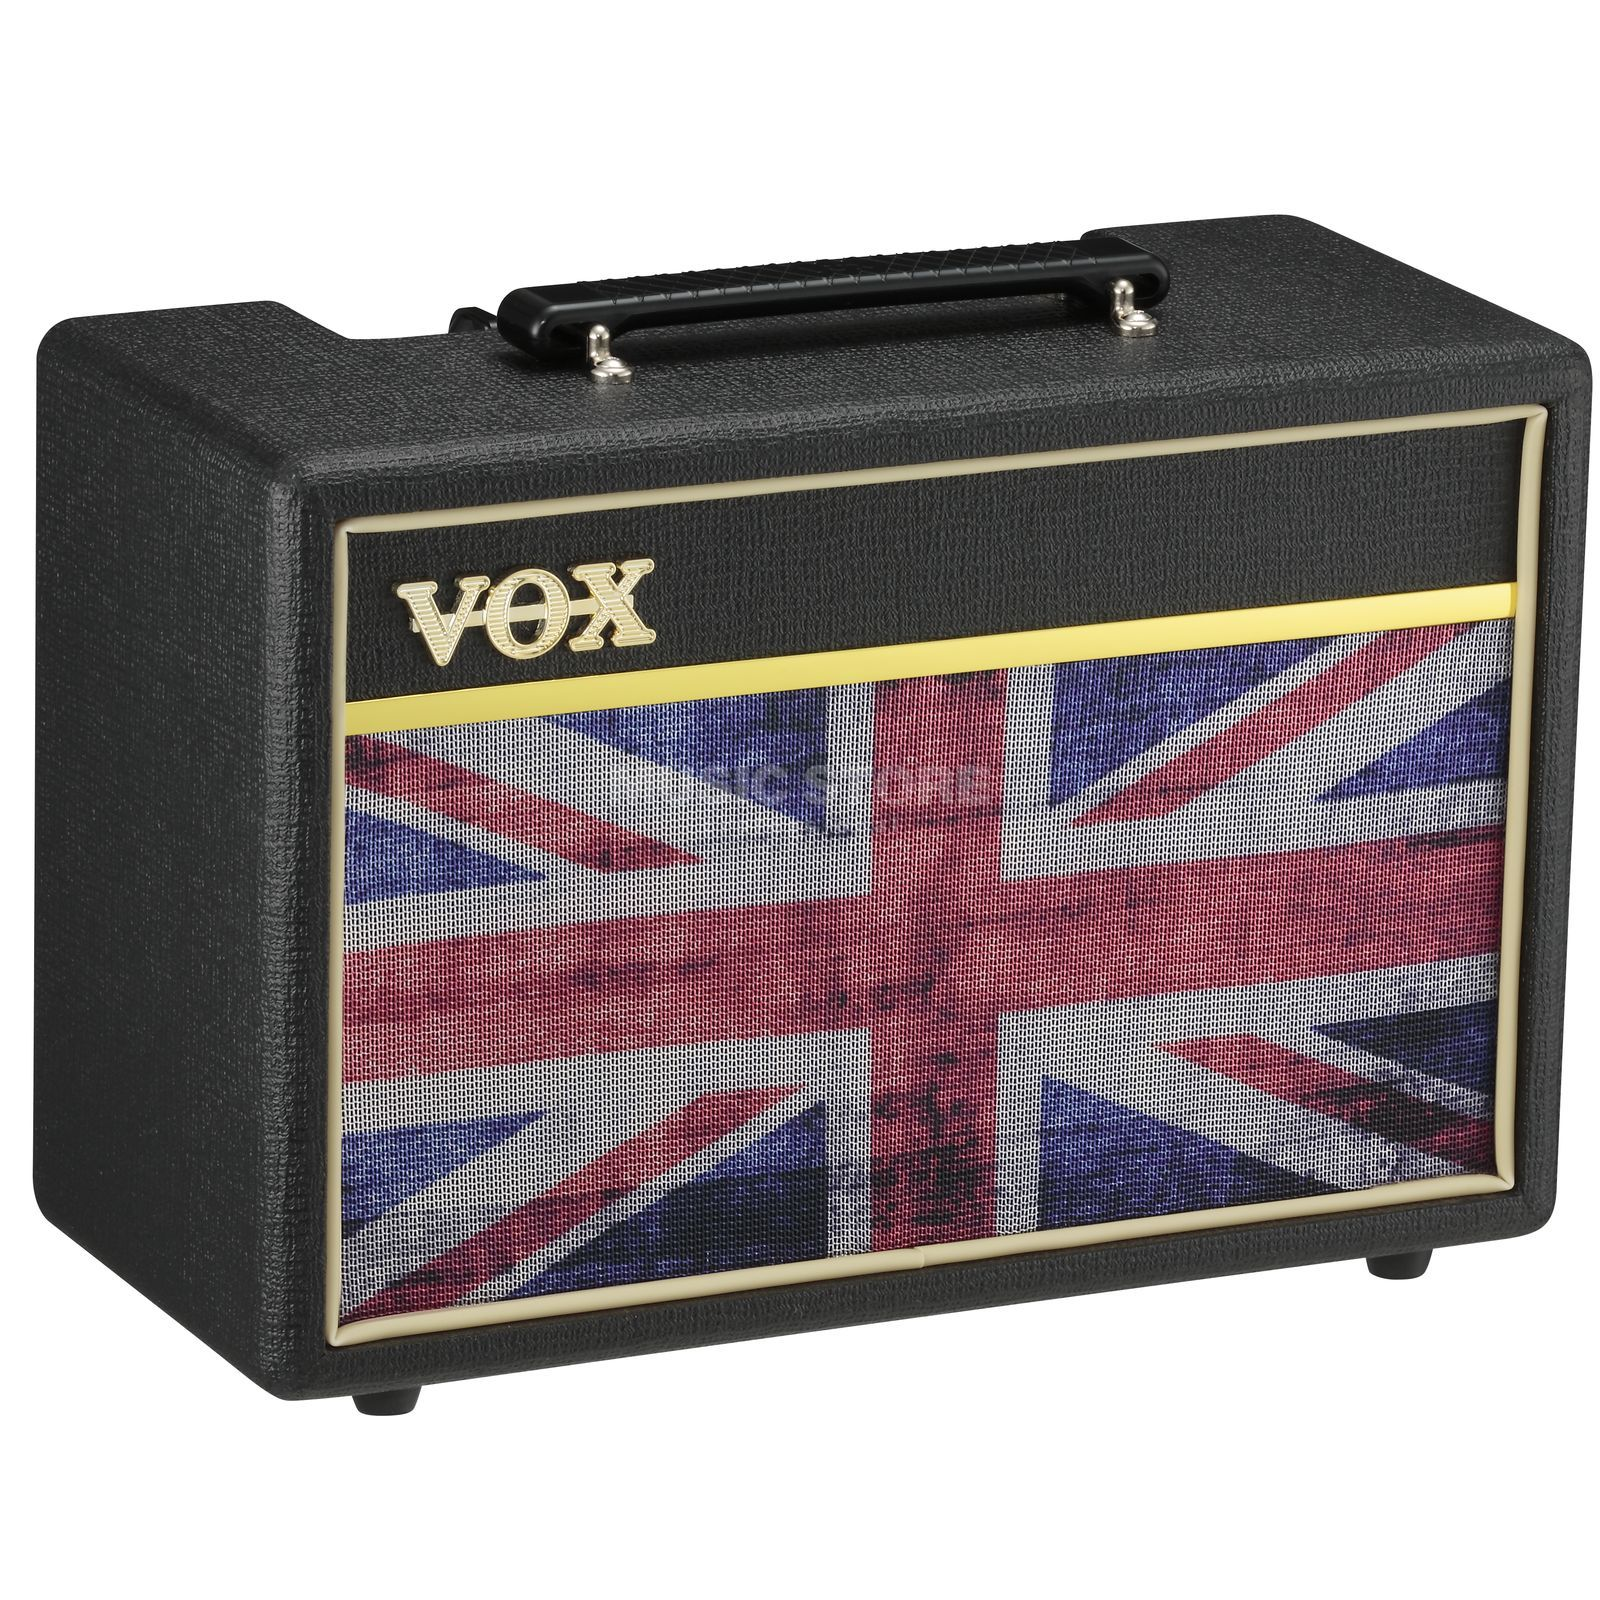 VOX Pathfinder 10 Union Jack Black Limited Edition Zdjęcie produktu